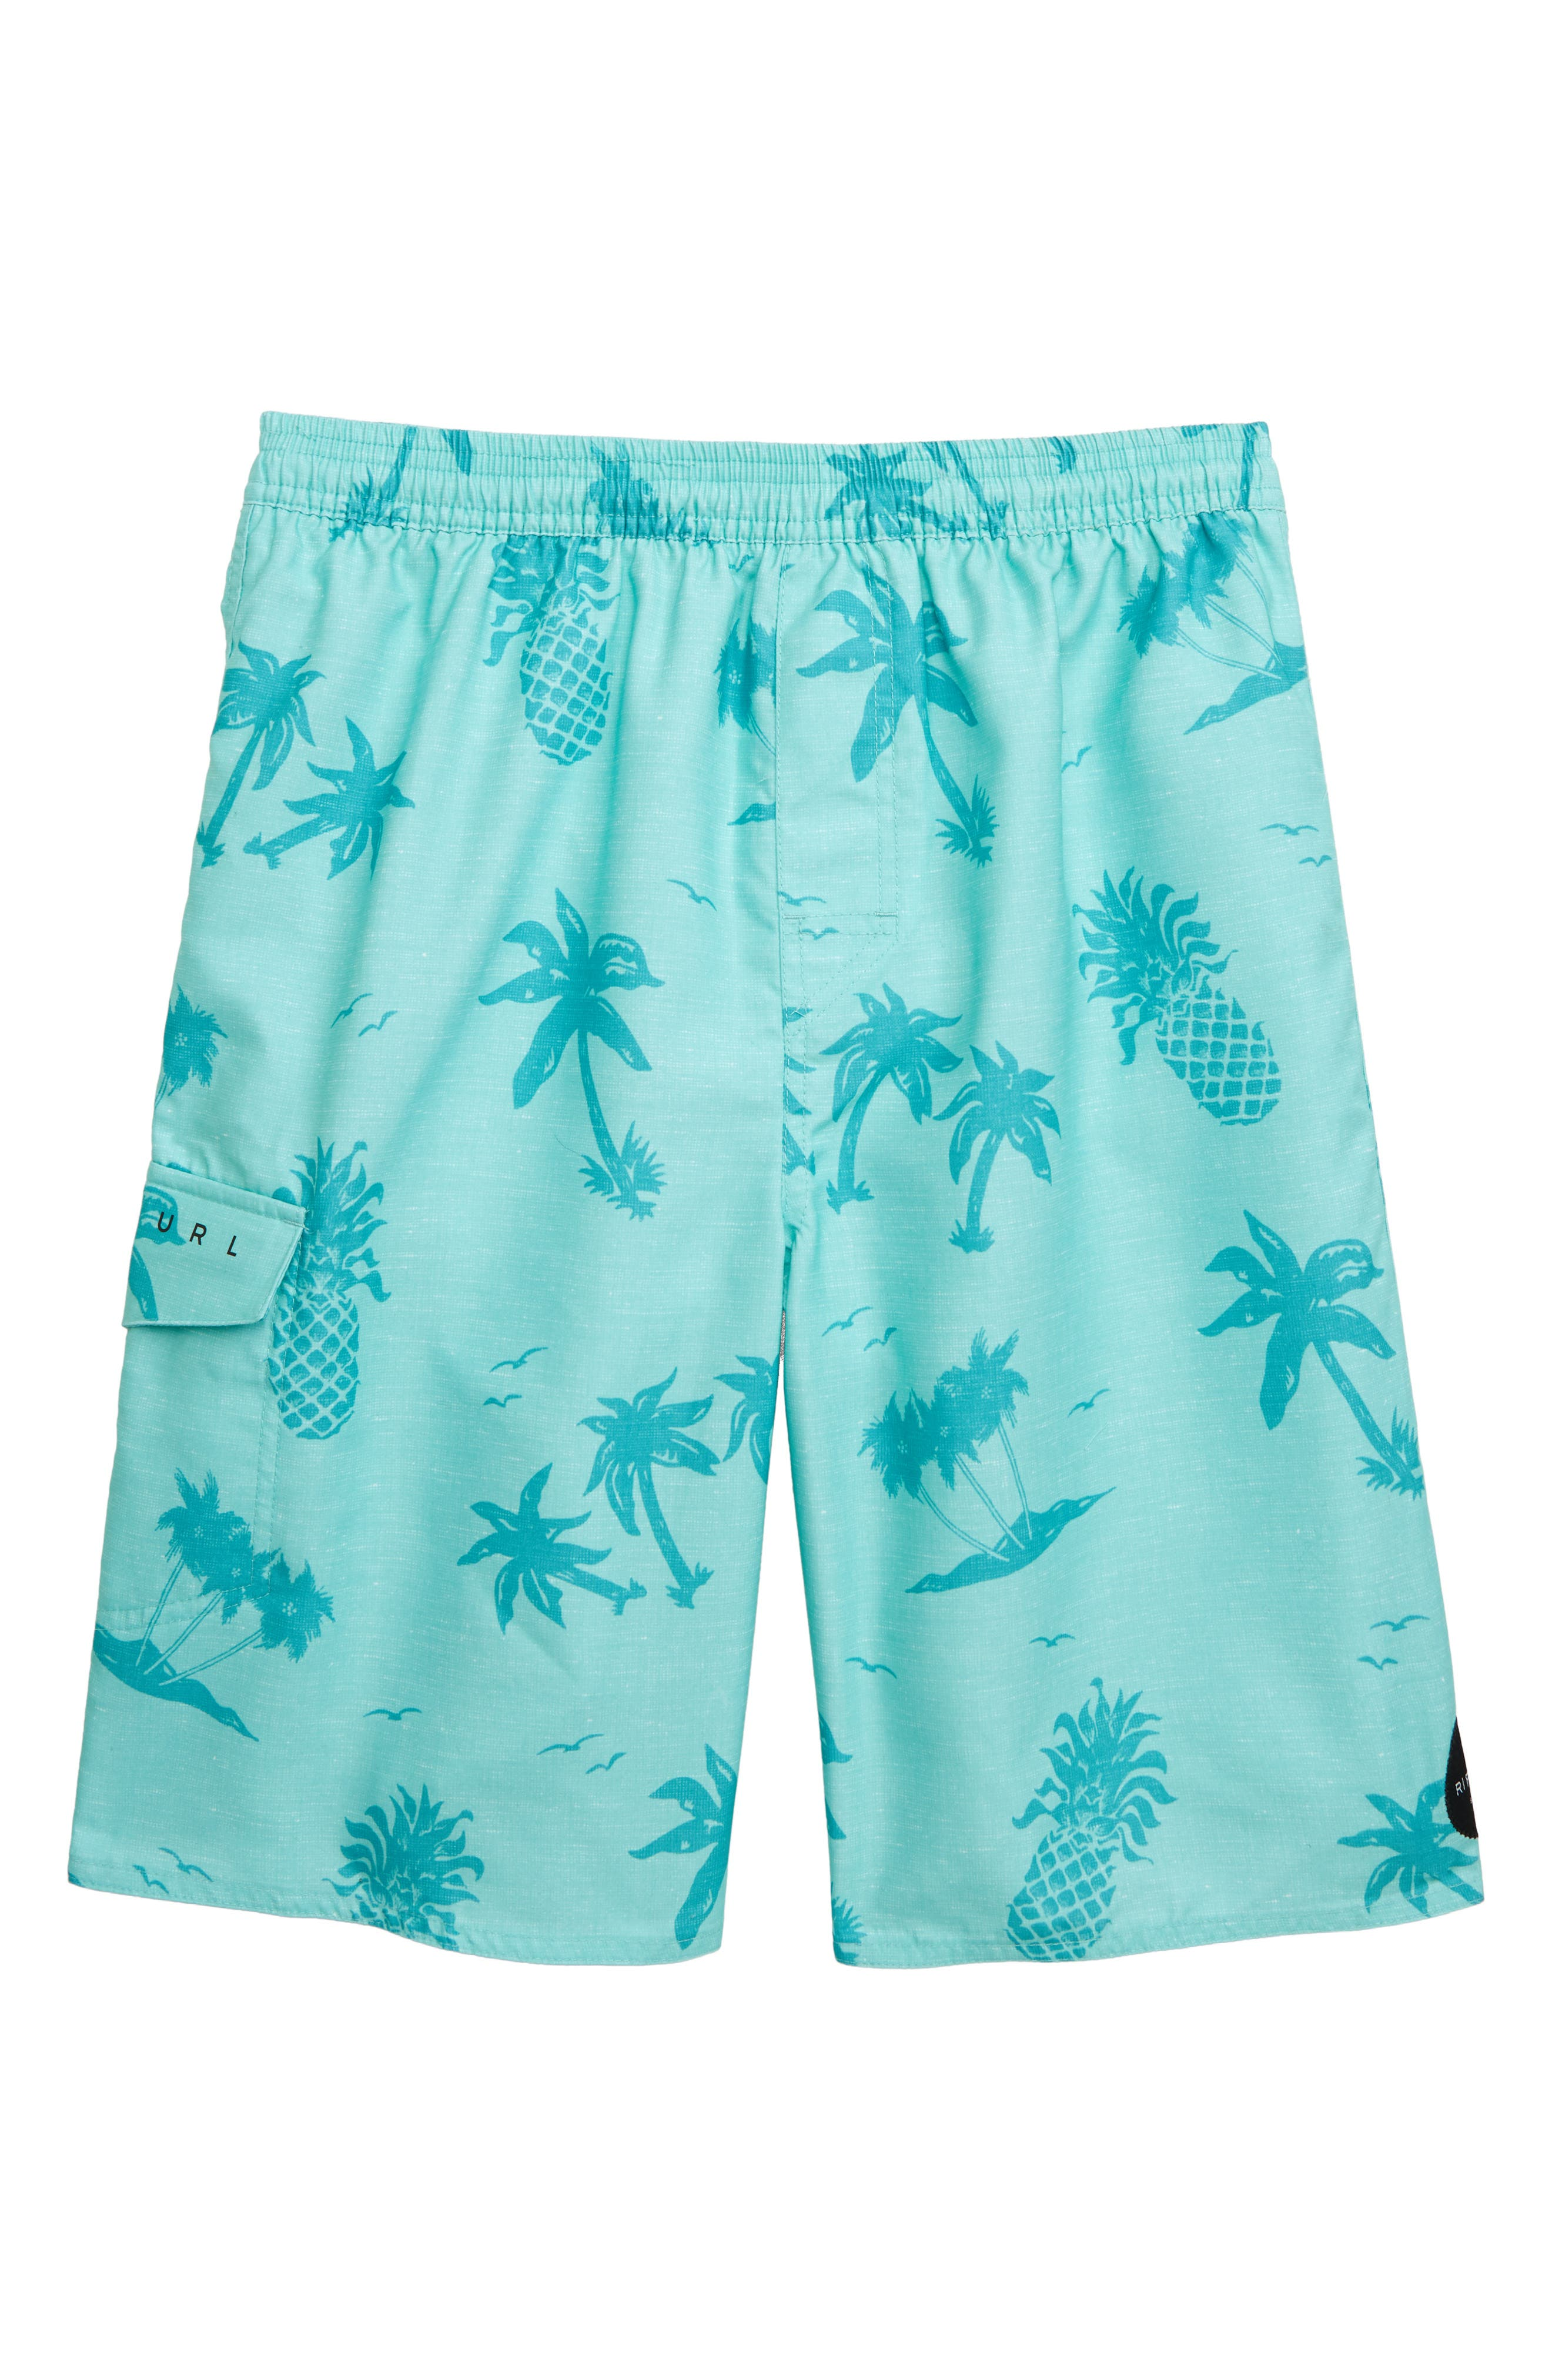 Image of Rip Curl Poolside Volley Board Shorts